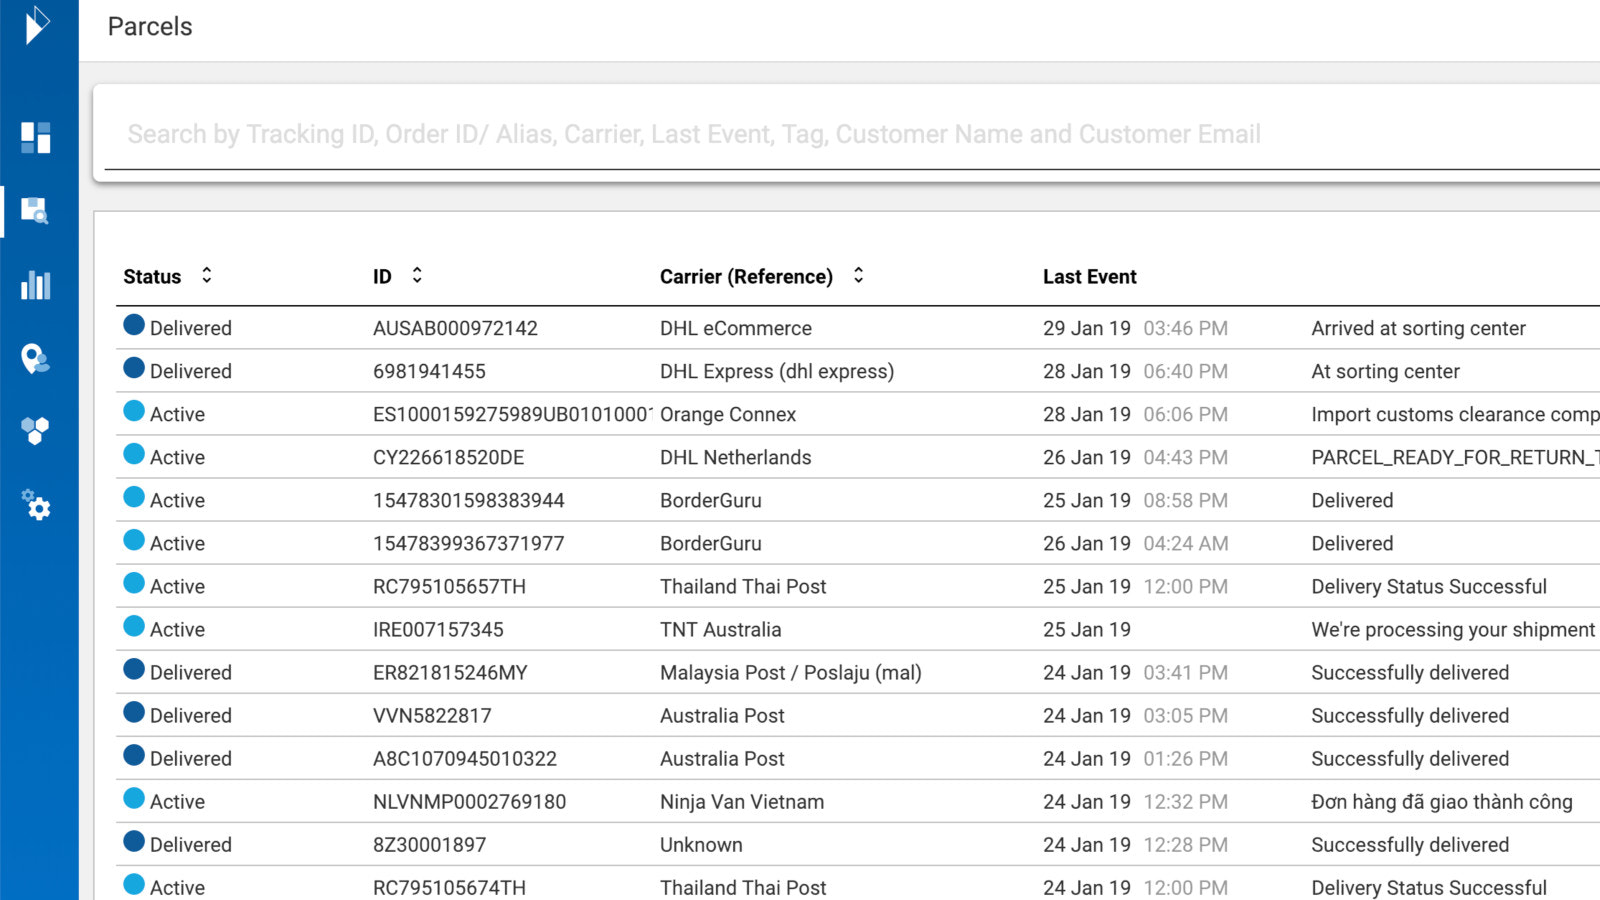 Customer service interface tool with an overview of all parcels